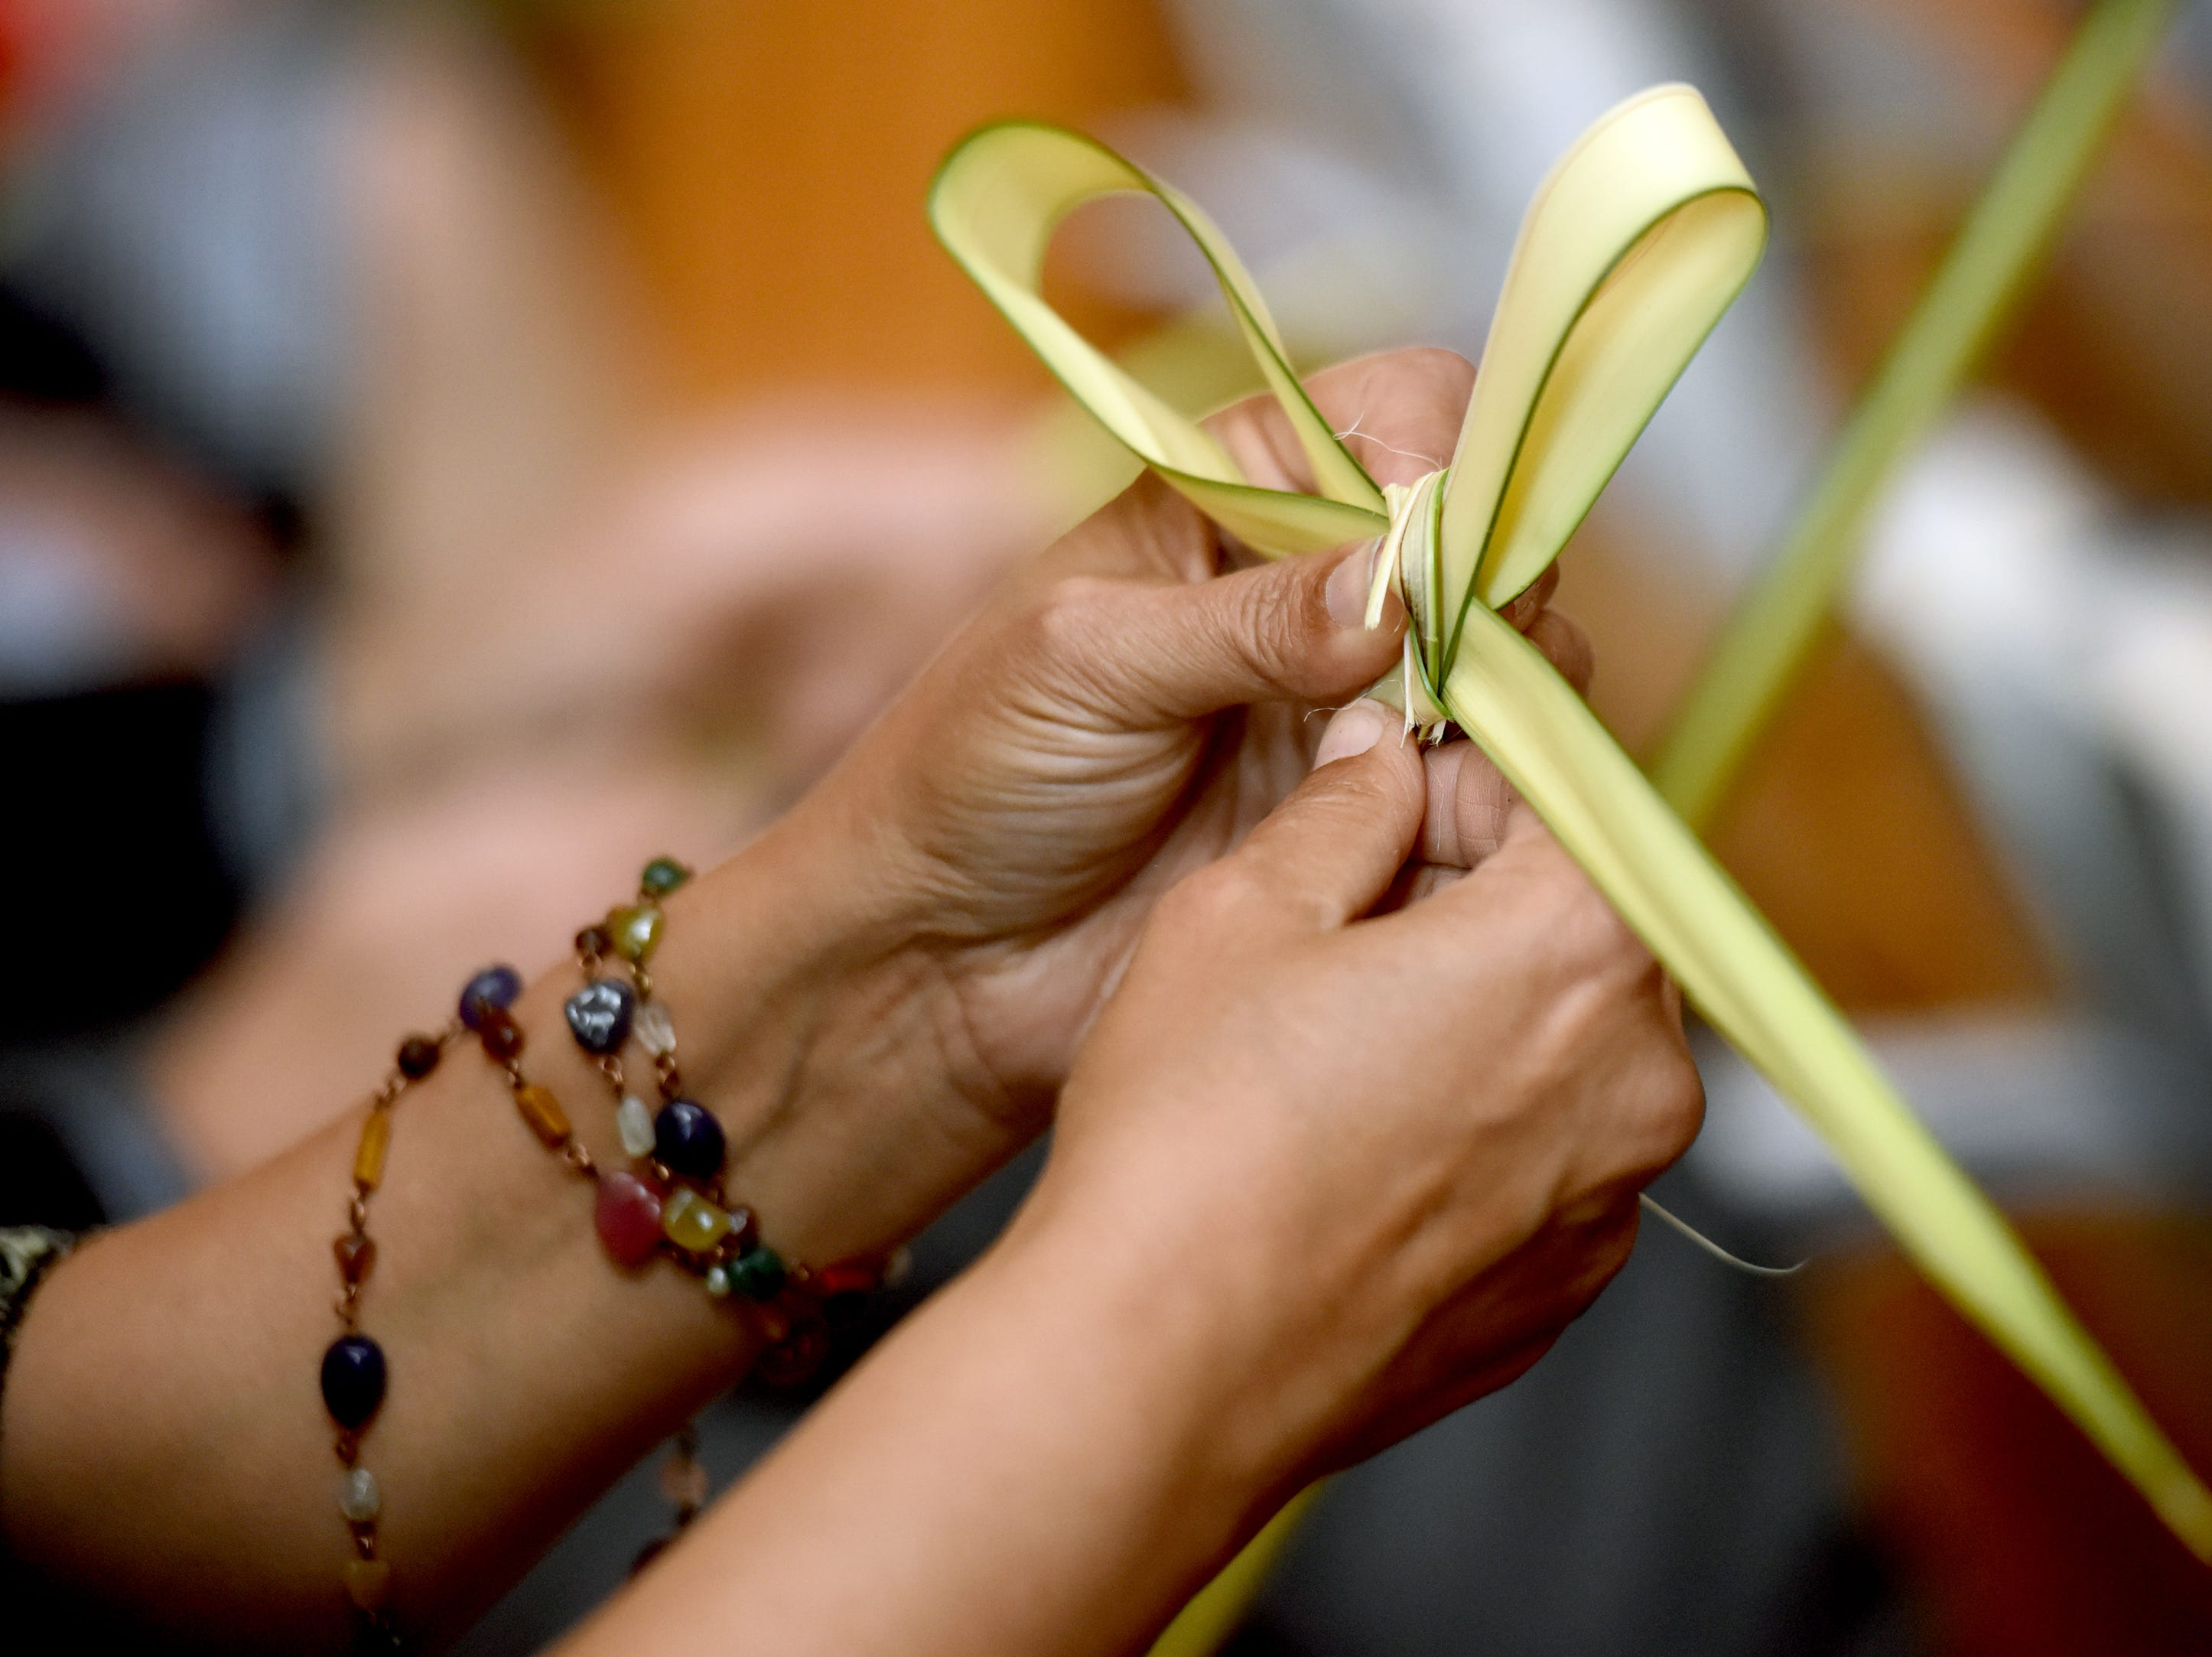 West Side Presbyterian Church in Ridgewood commemorated Palm Sunday on April 14, 2019 during services. A congregant makes a cross out of her palm.